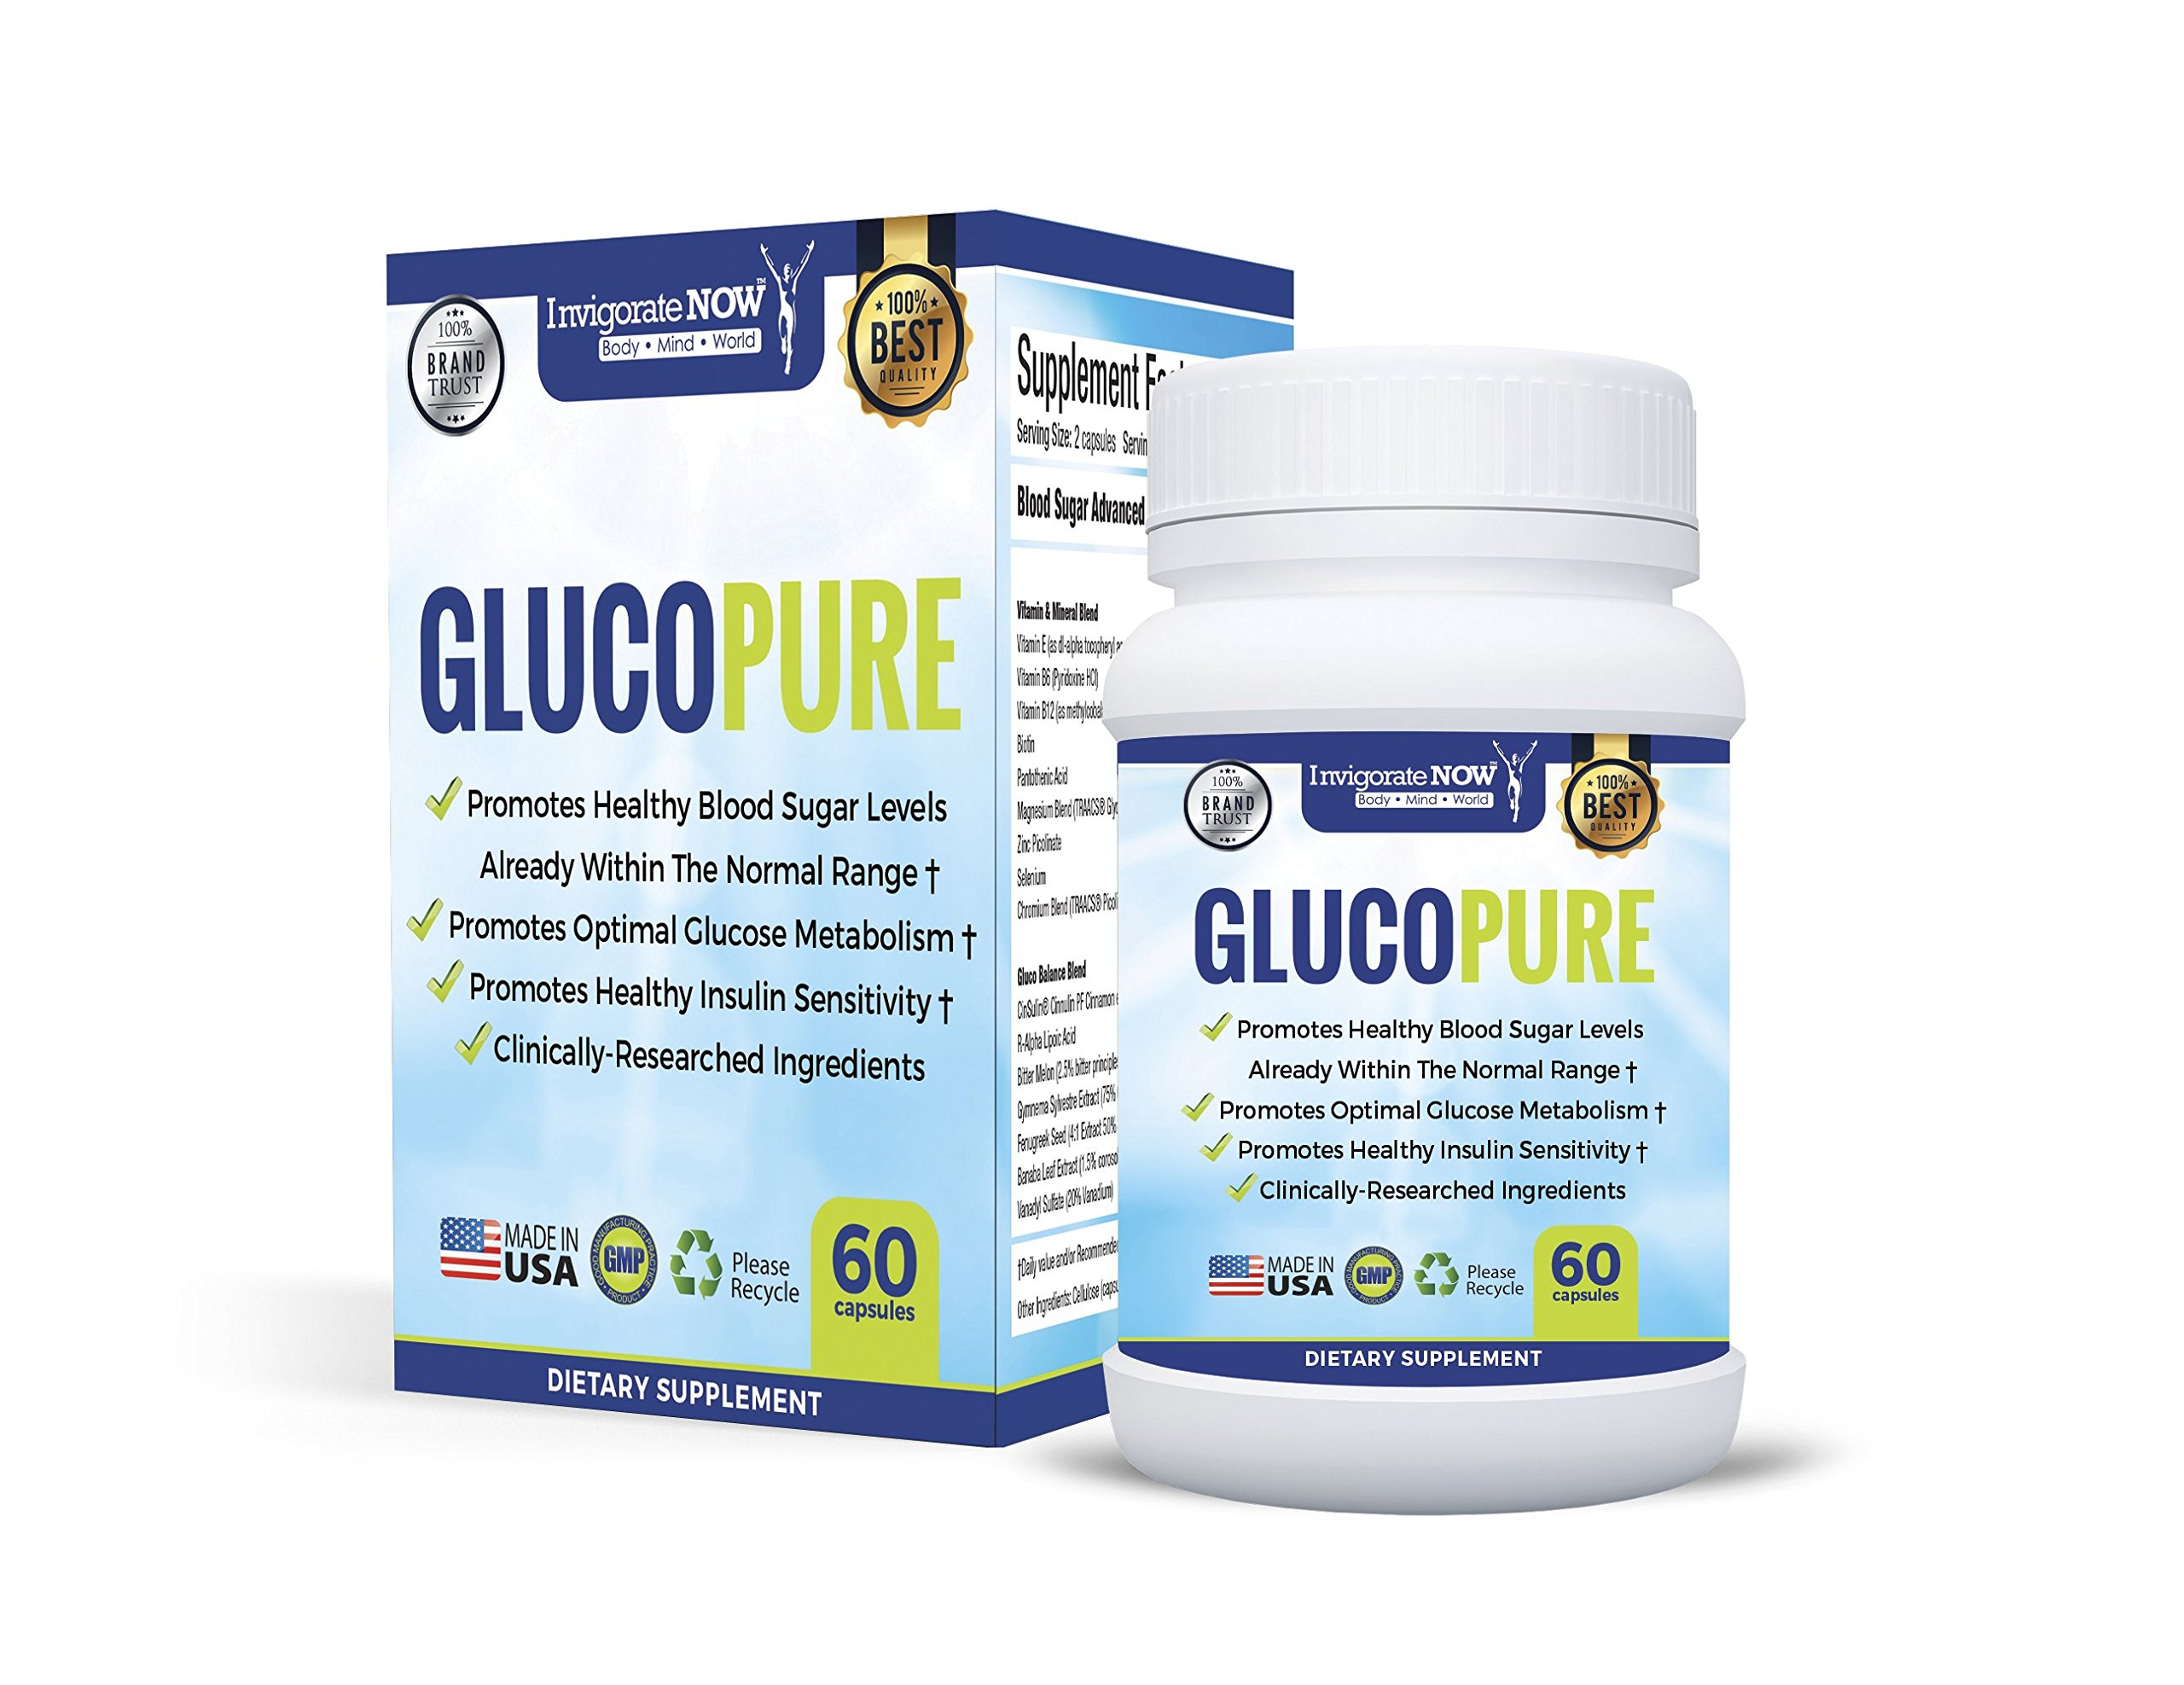 GlucoPure Blood Sugar Control Supplement by InvigorateNOW - Support For Blood Sugar, Cholesterol and Cravings, Promotes Healthy Blood Glucose Levels and Appetite (60 Capsules) - 1 Bottle